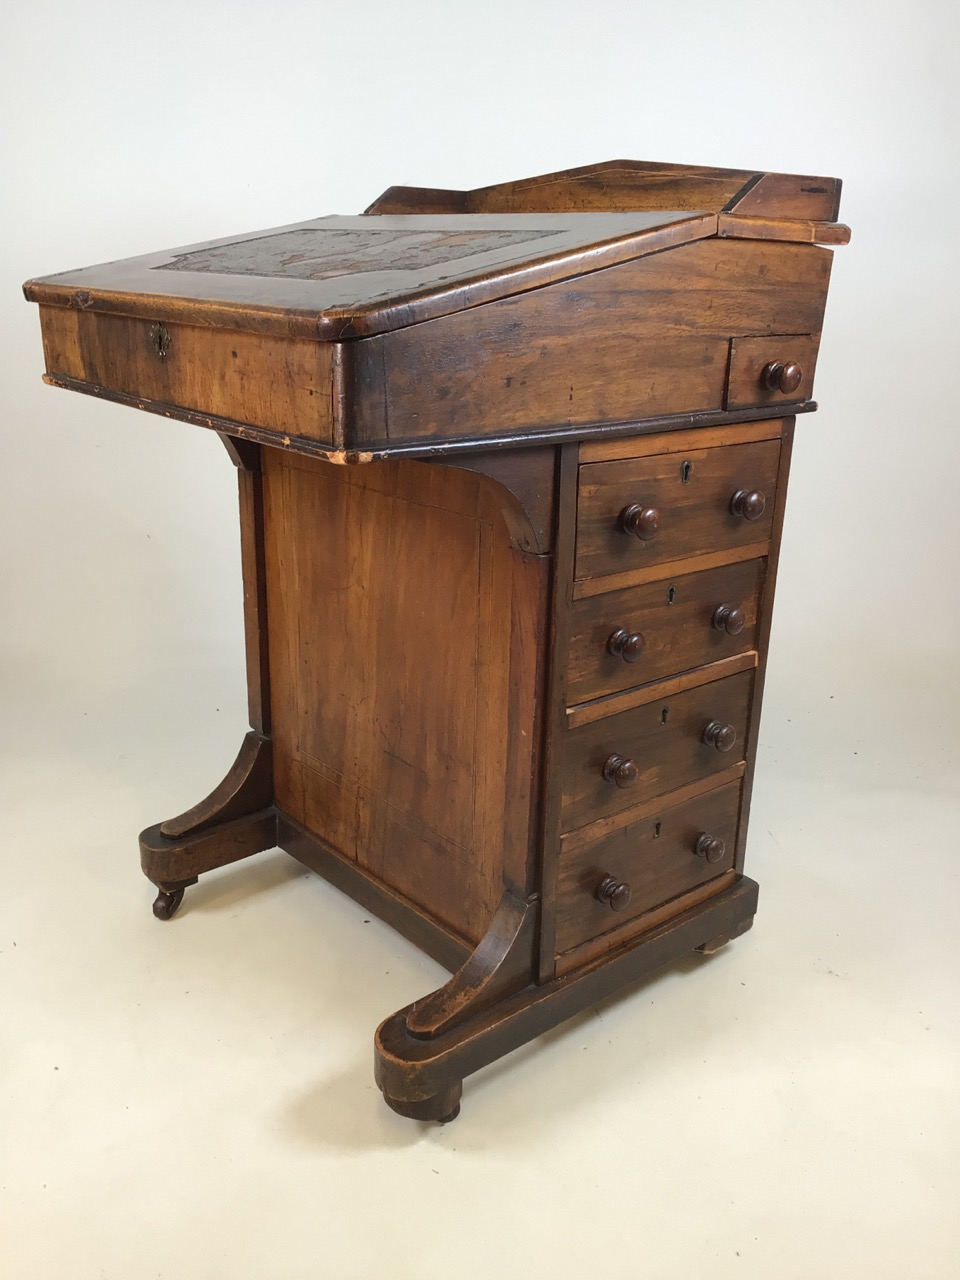 A Victorian inlaid davenport on ceramic castors with leather writing slope to interior desk. With - Image 3 of 7